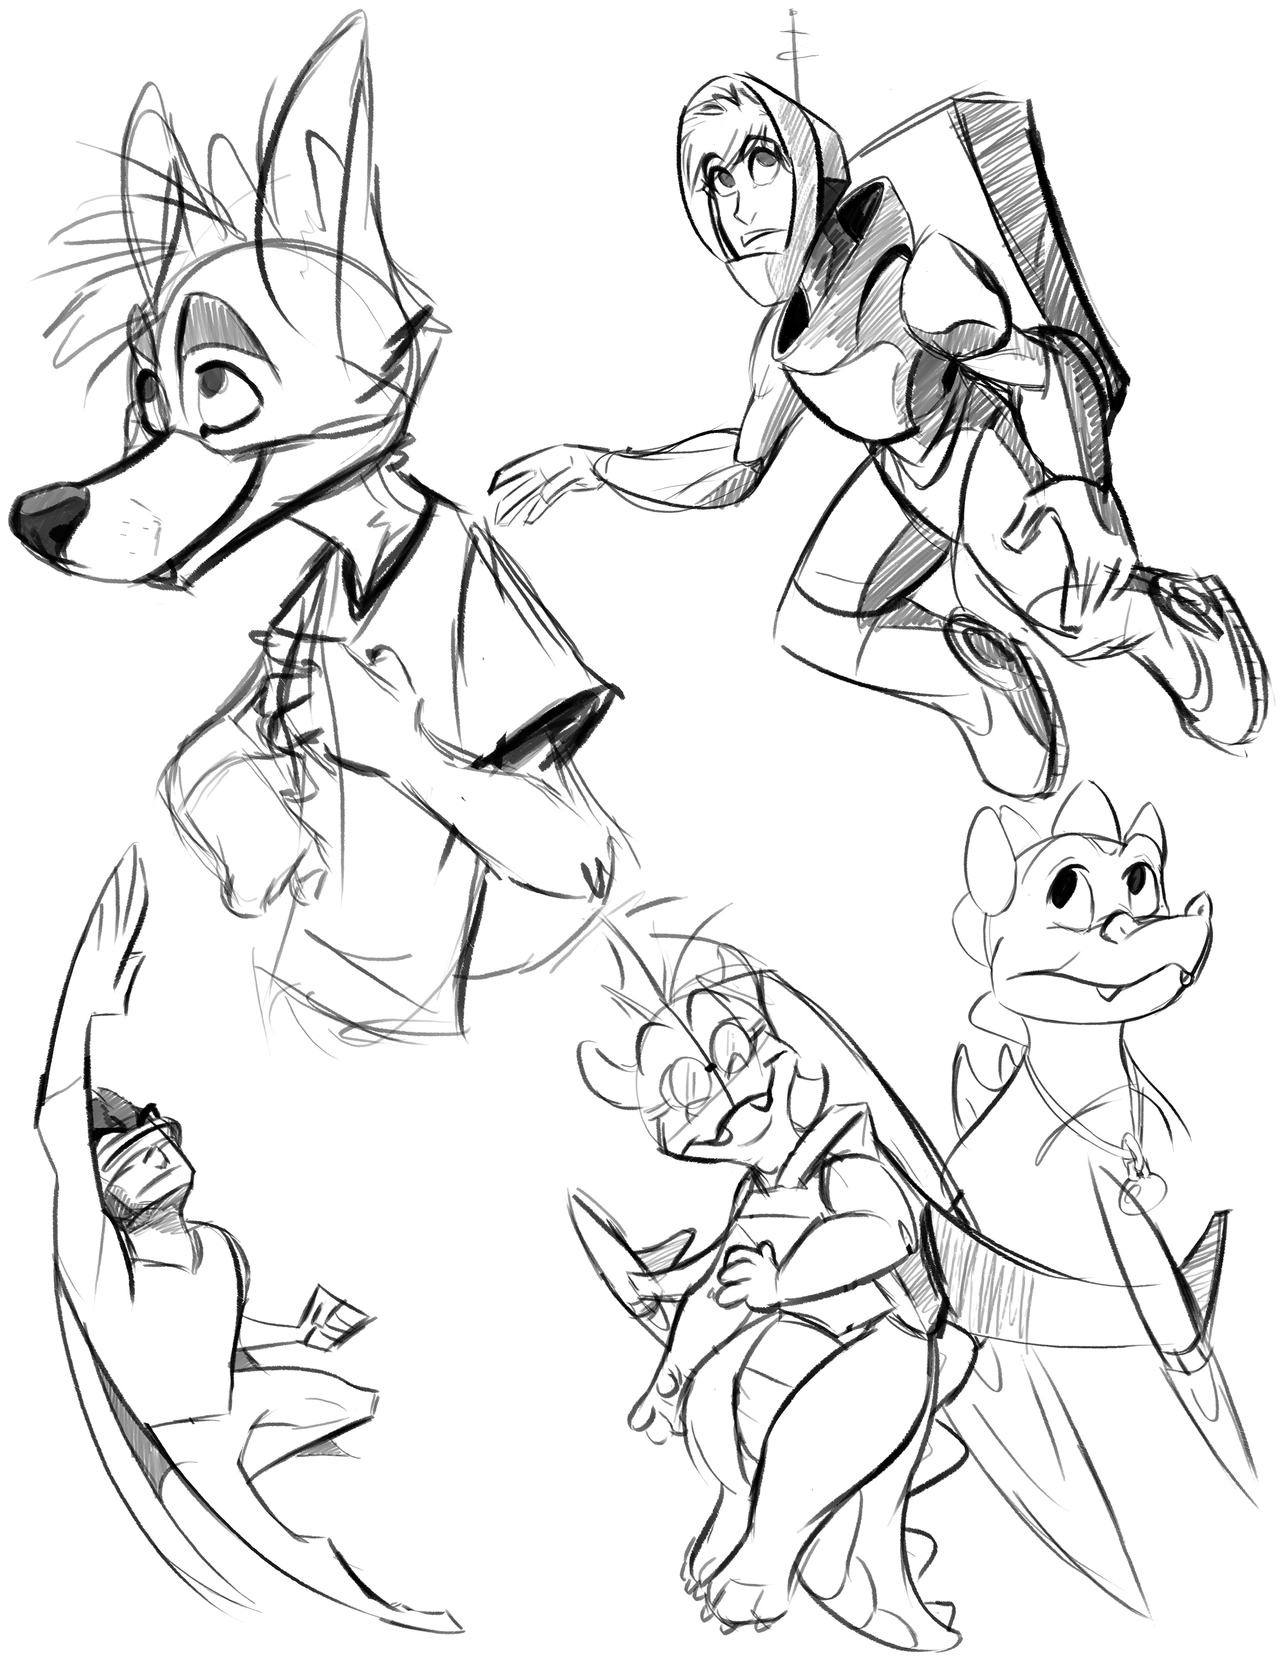 sketch daily 3-13-17 by CoyoteEsquire